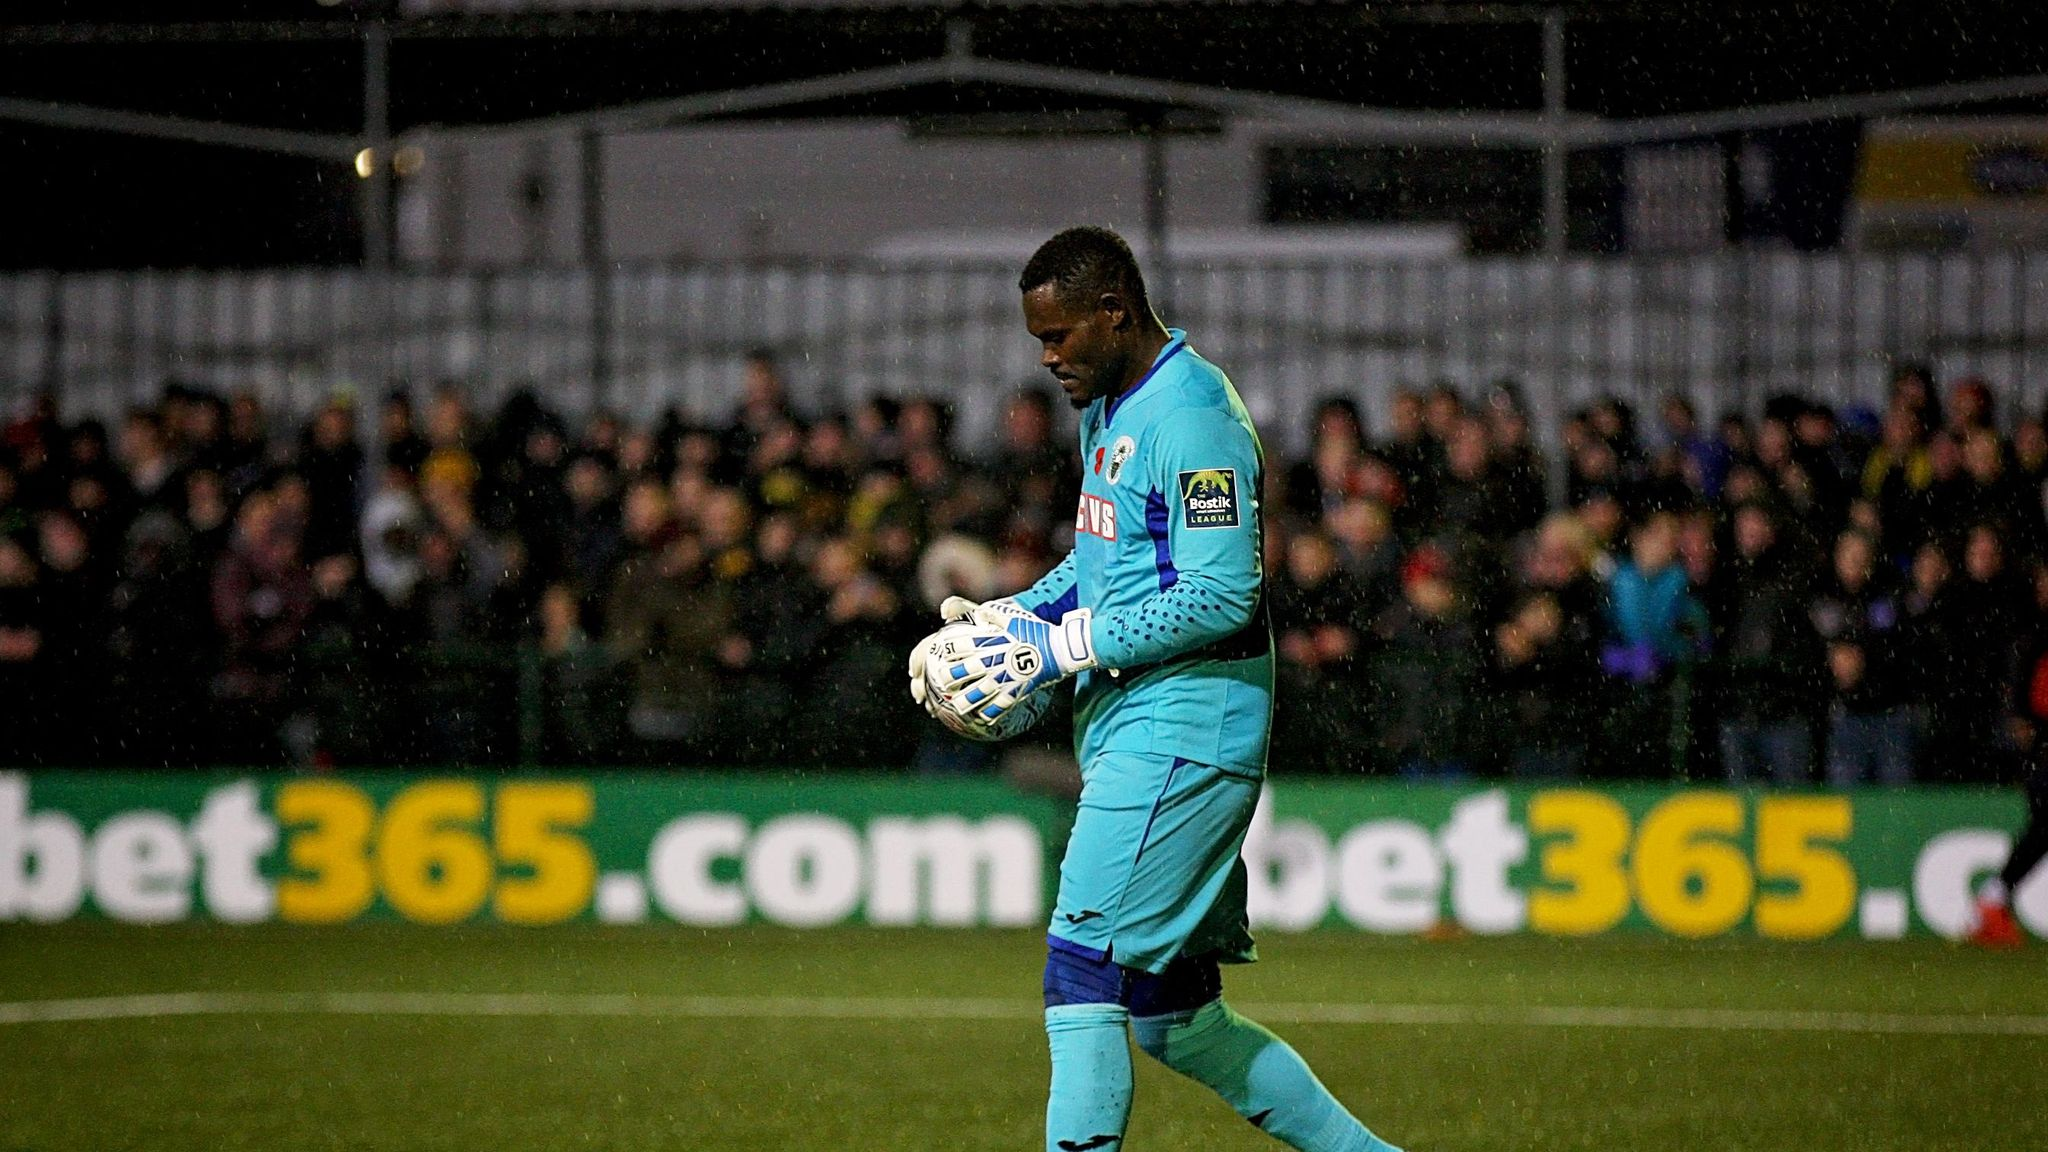 FA Cup tie between Haringey Borough and Yeovil abandoned after alleged racism